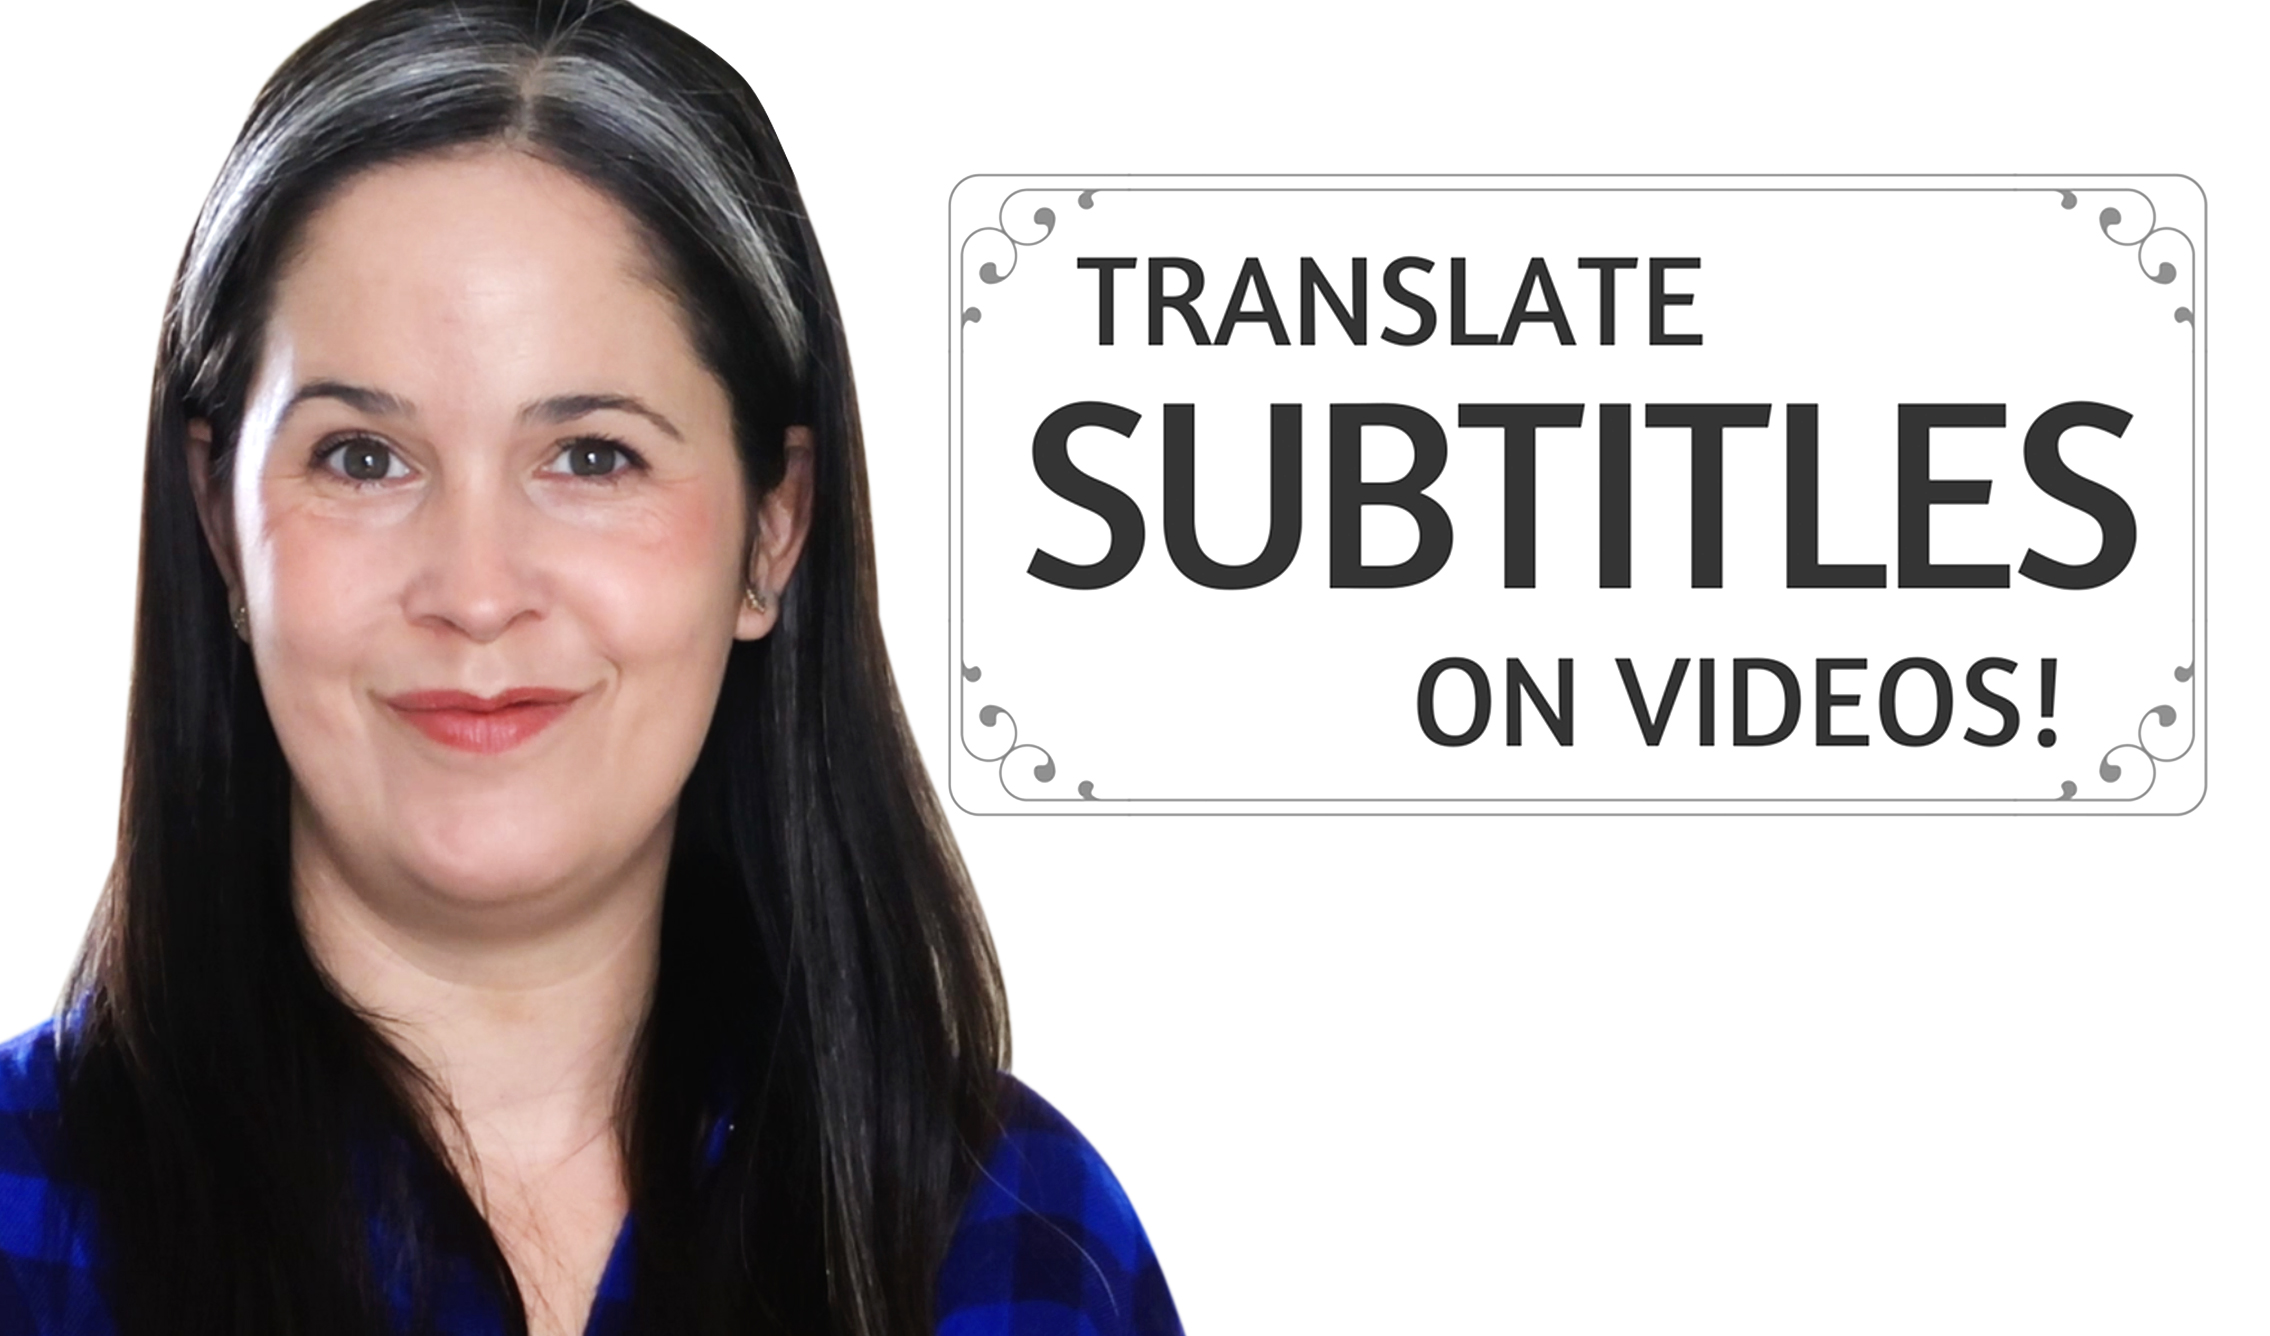 You Can Translate YouTube Videos Subtitle English to Other